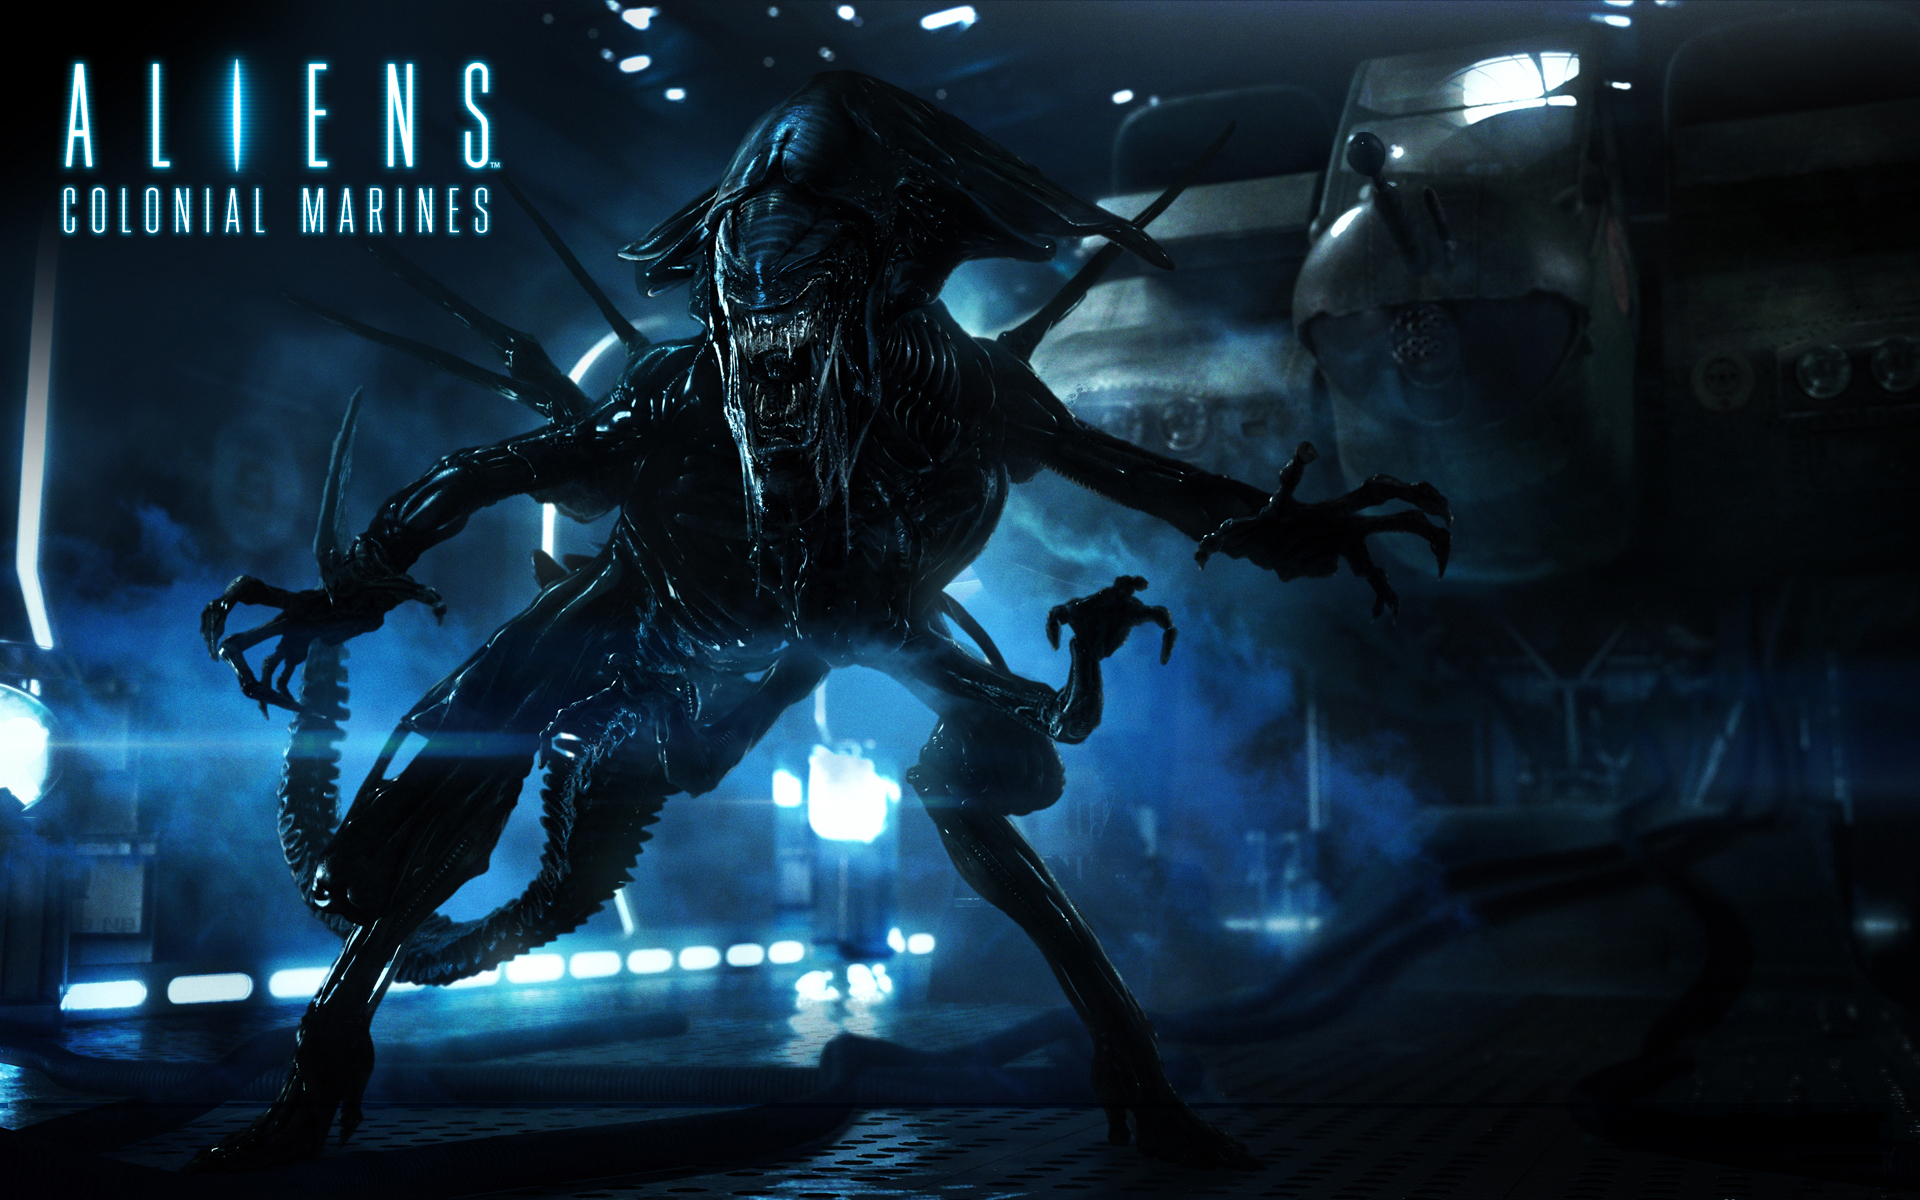 aliens colonial marines 08072013